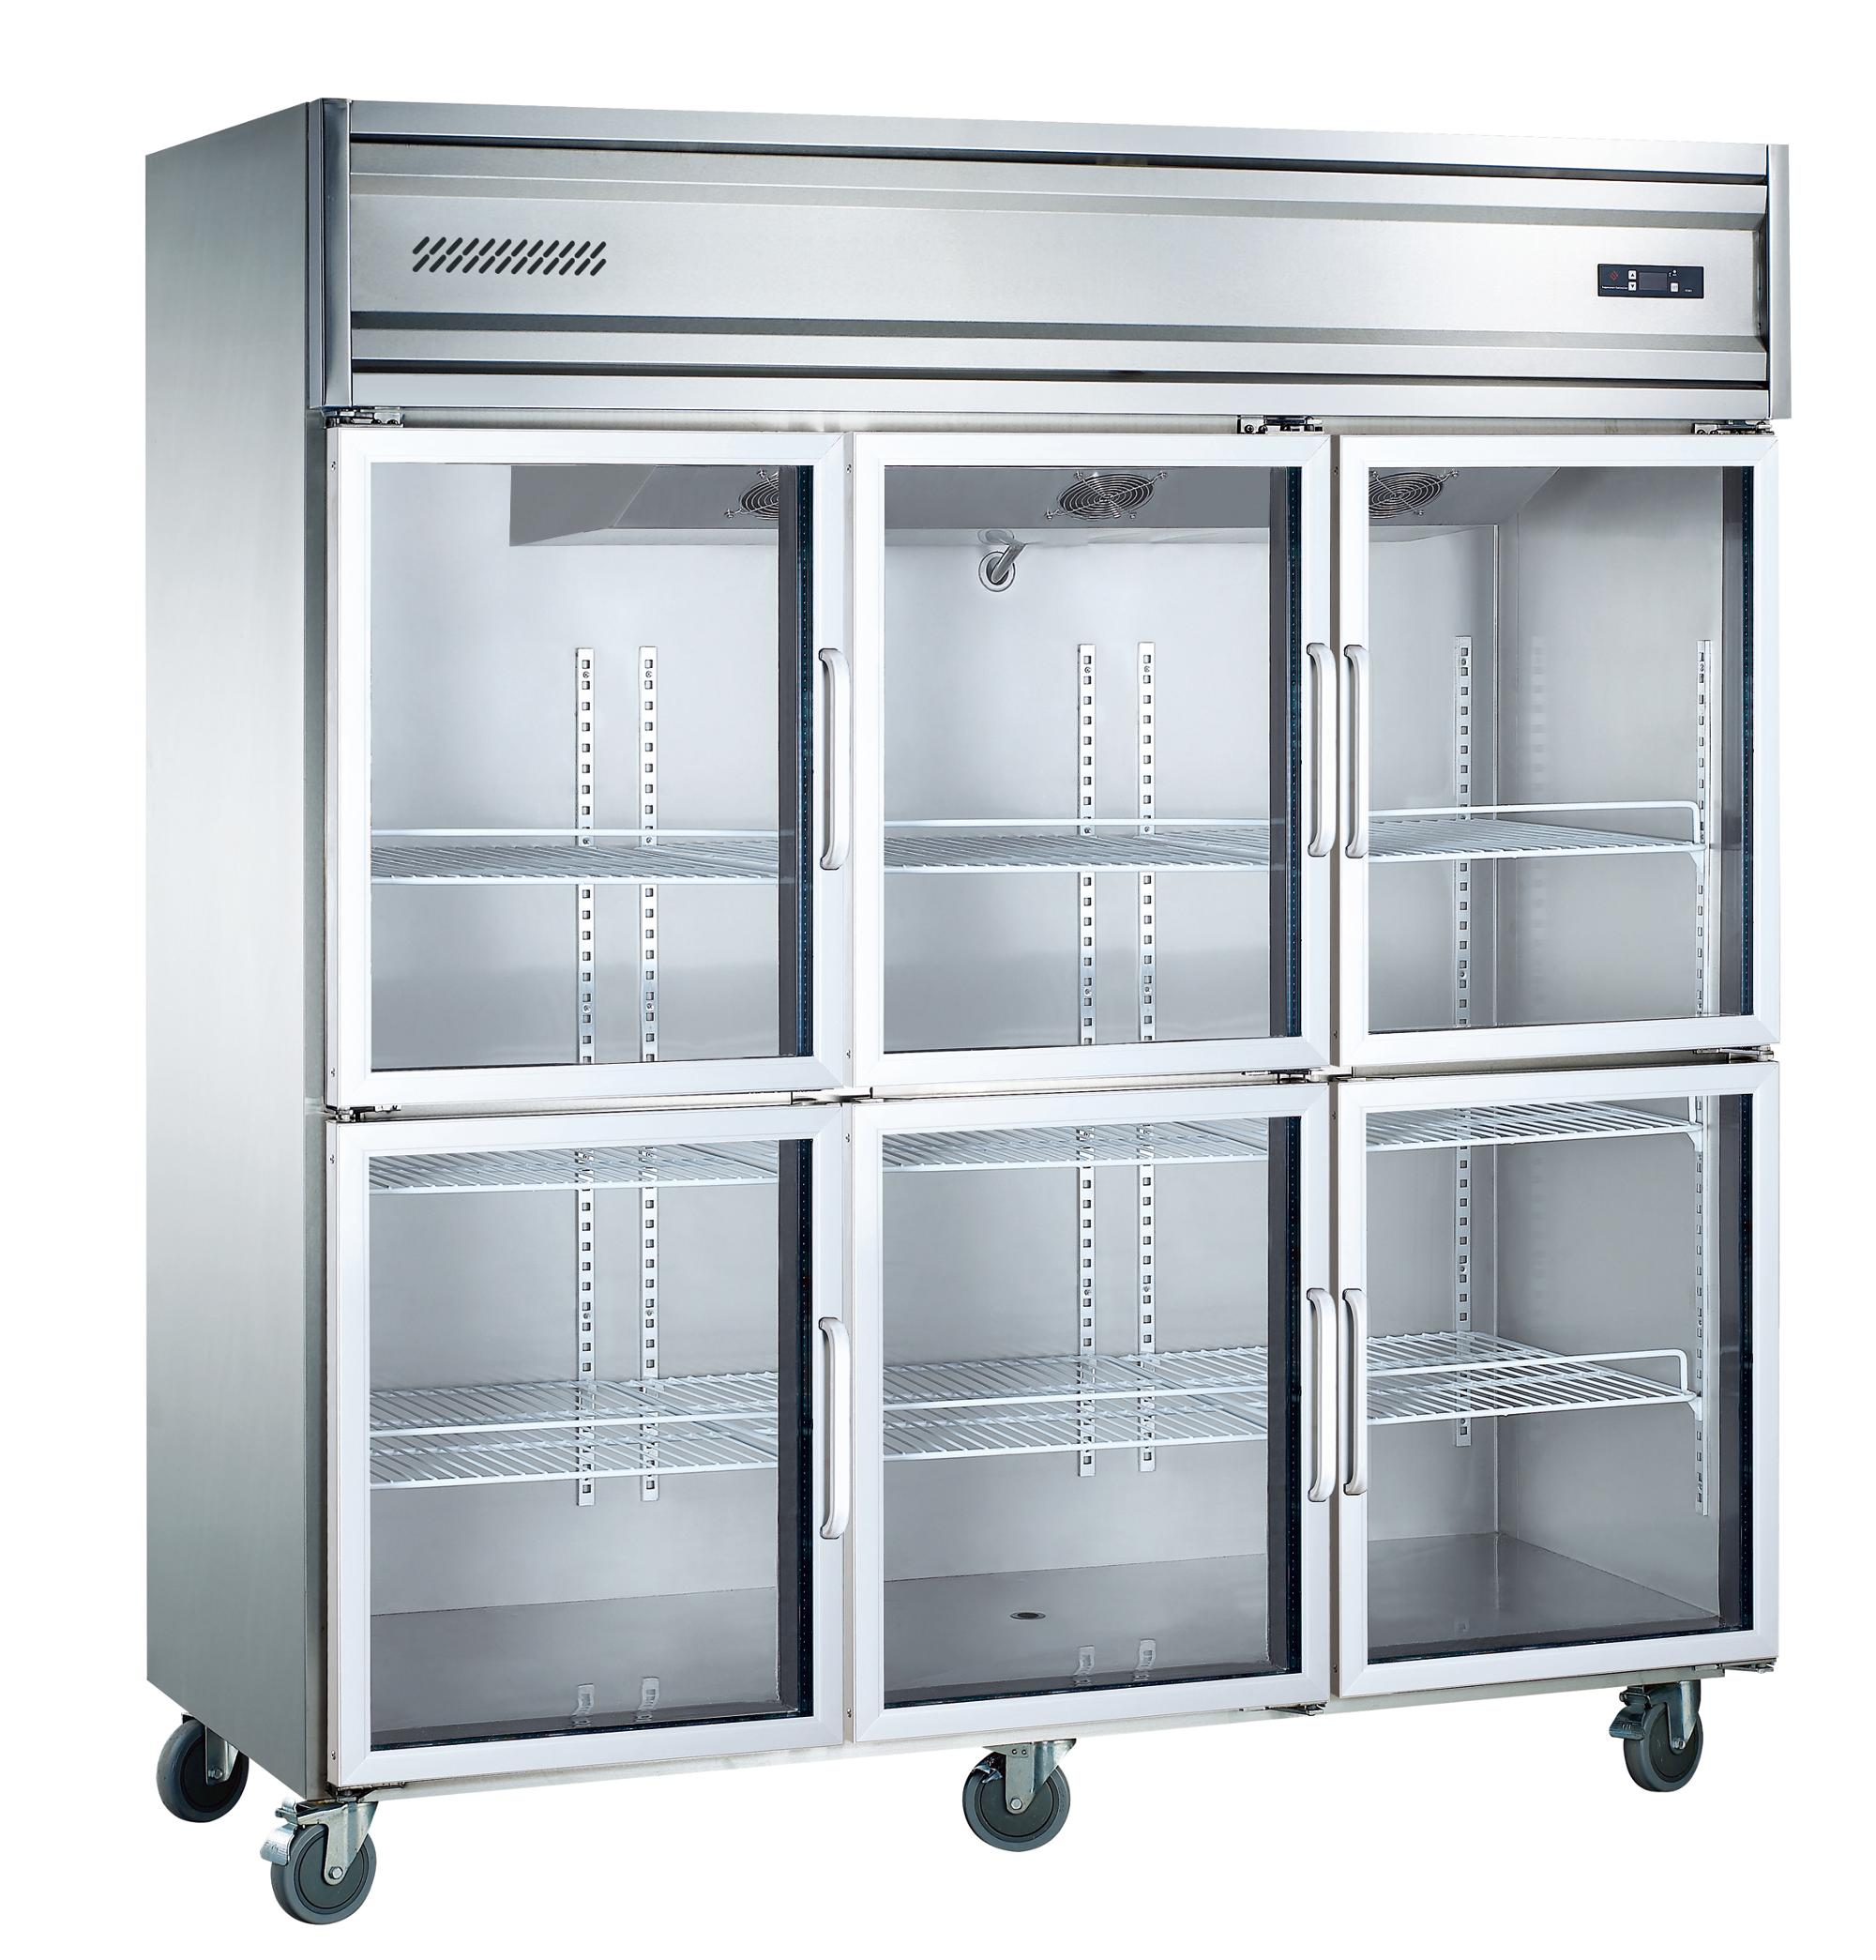 Sumyo Kg16L6W Glass Doors Large Capacity Restaurant Kitchen Refrigerator